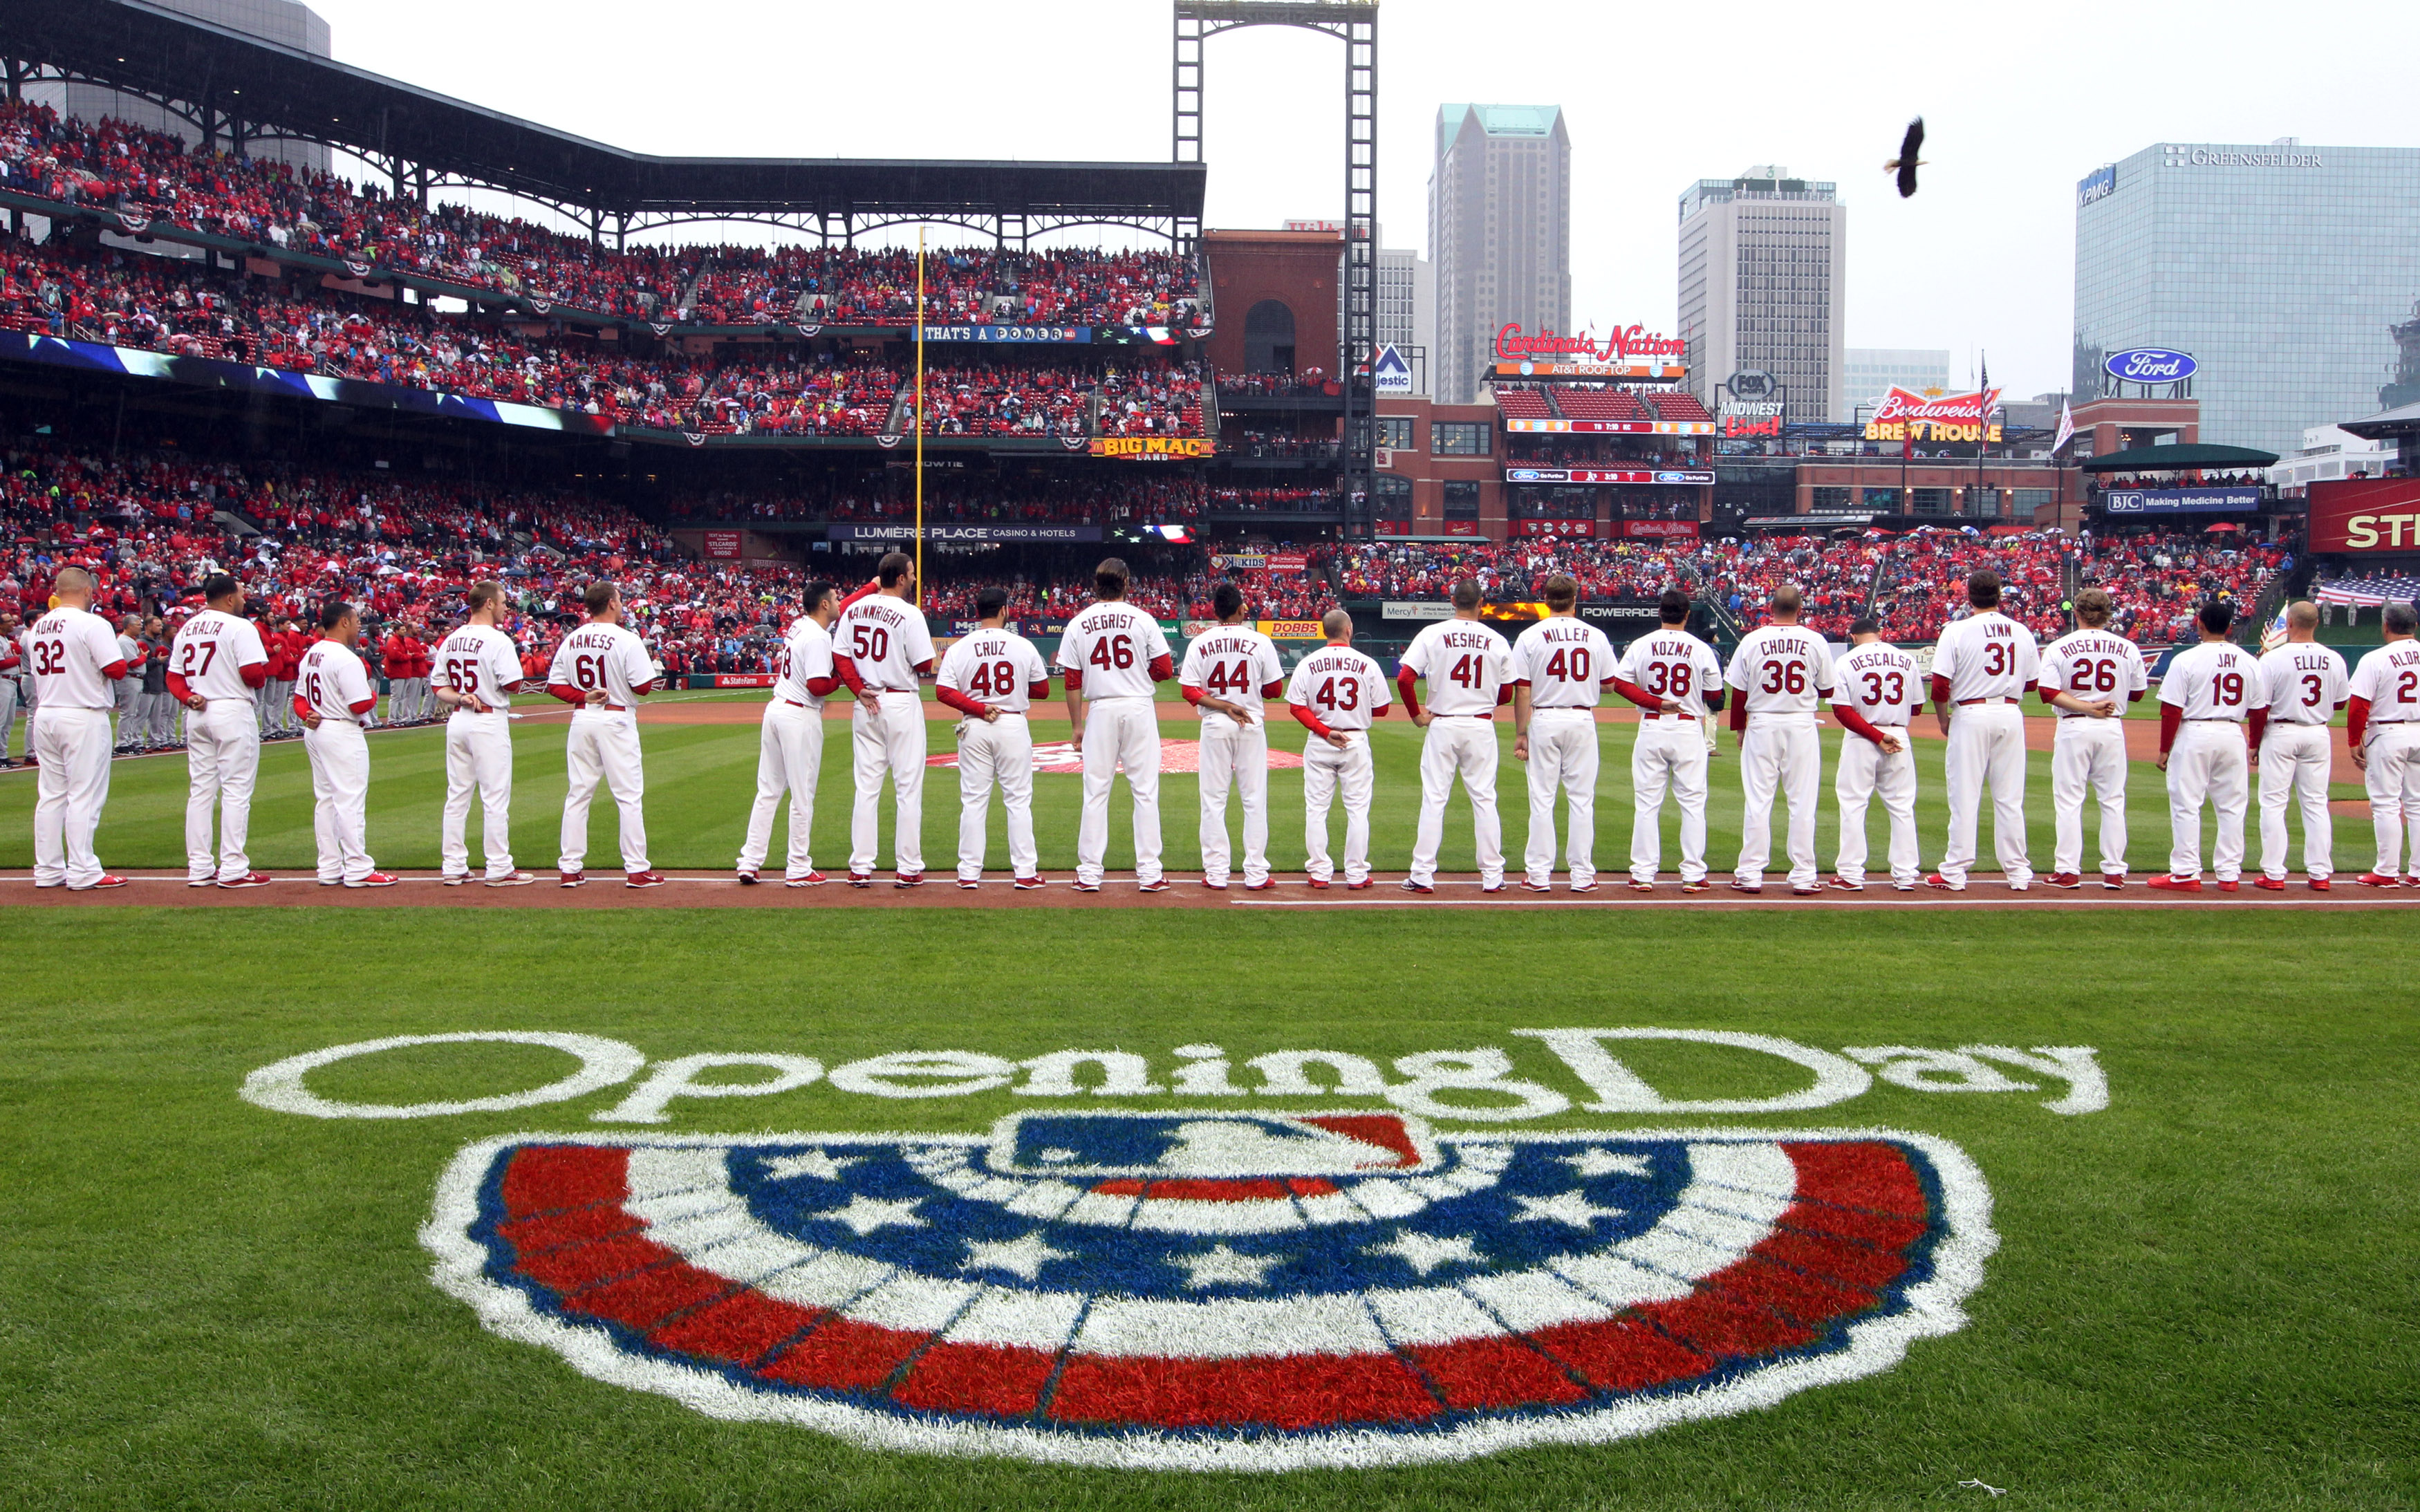 Coach BA's Opening Day Cardinals Lineup – Burn Before Reading